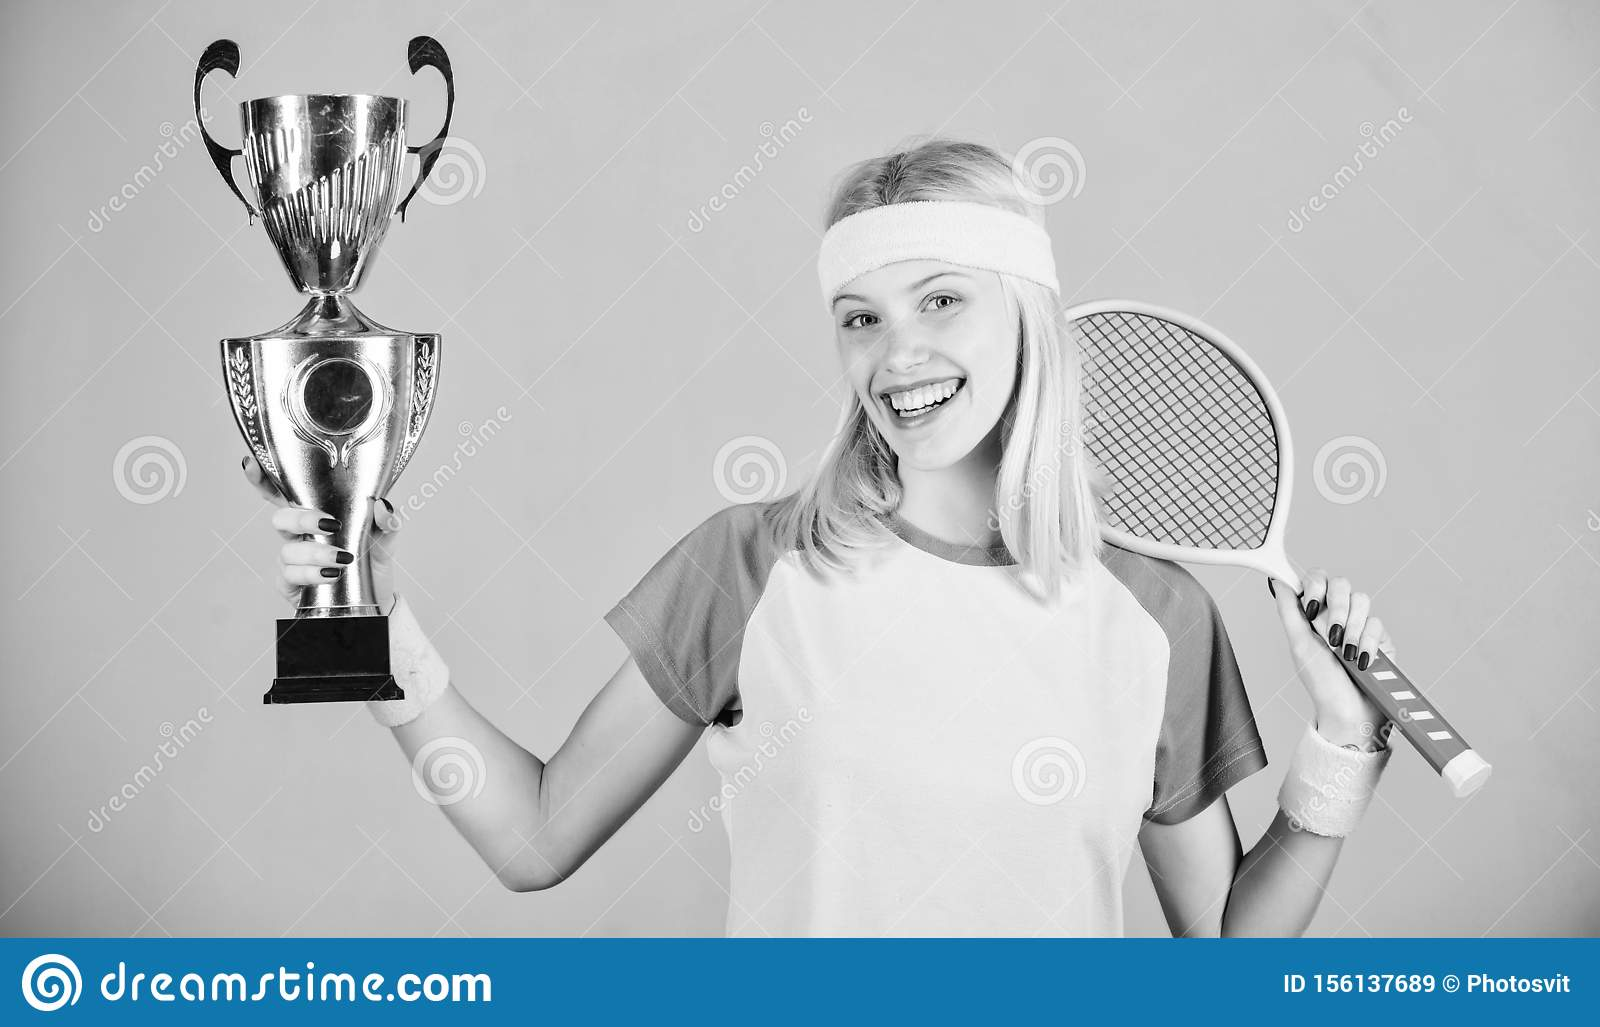 Woman wear sport outfit. Tennis player win championship. First place. Sport achievement. Celebrate victory. Tennis